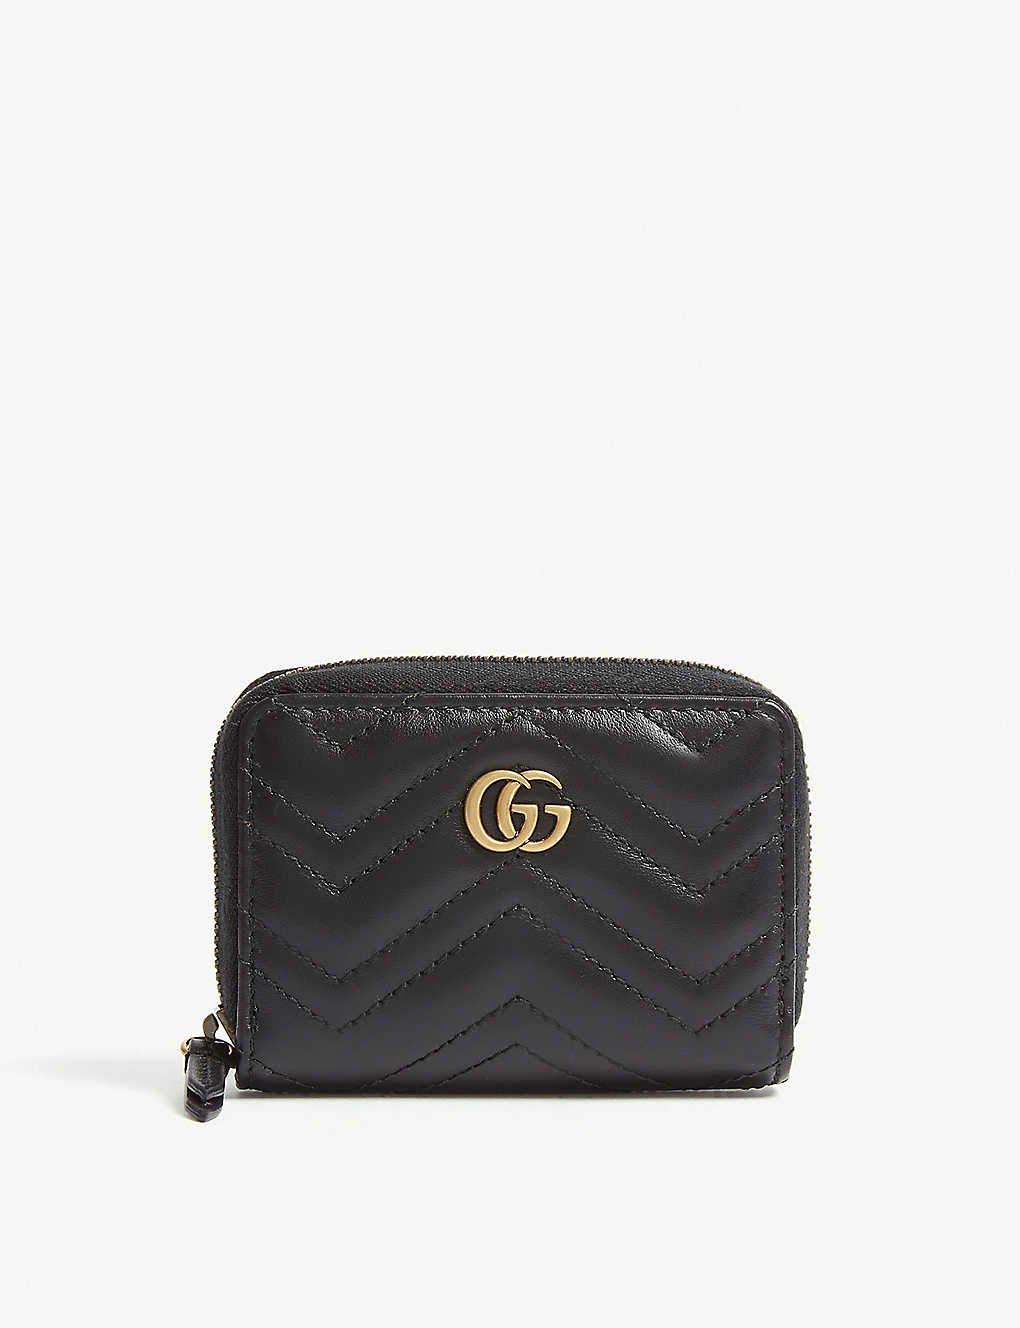 110310a8412d8c GUCCI - Marmont matelasse leather concertina purse | Selfridges.com